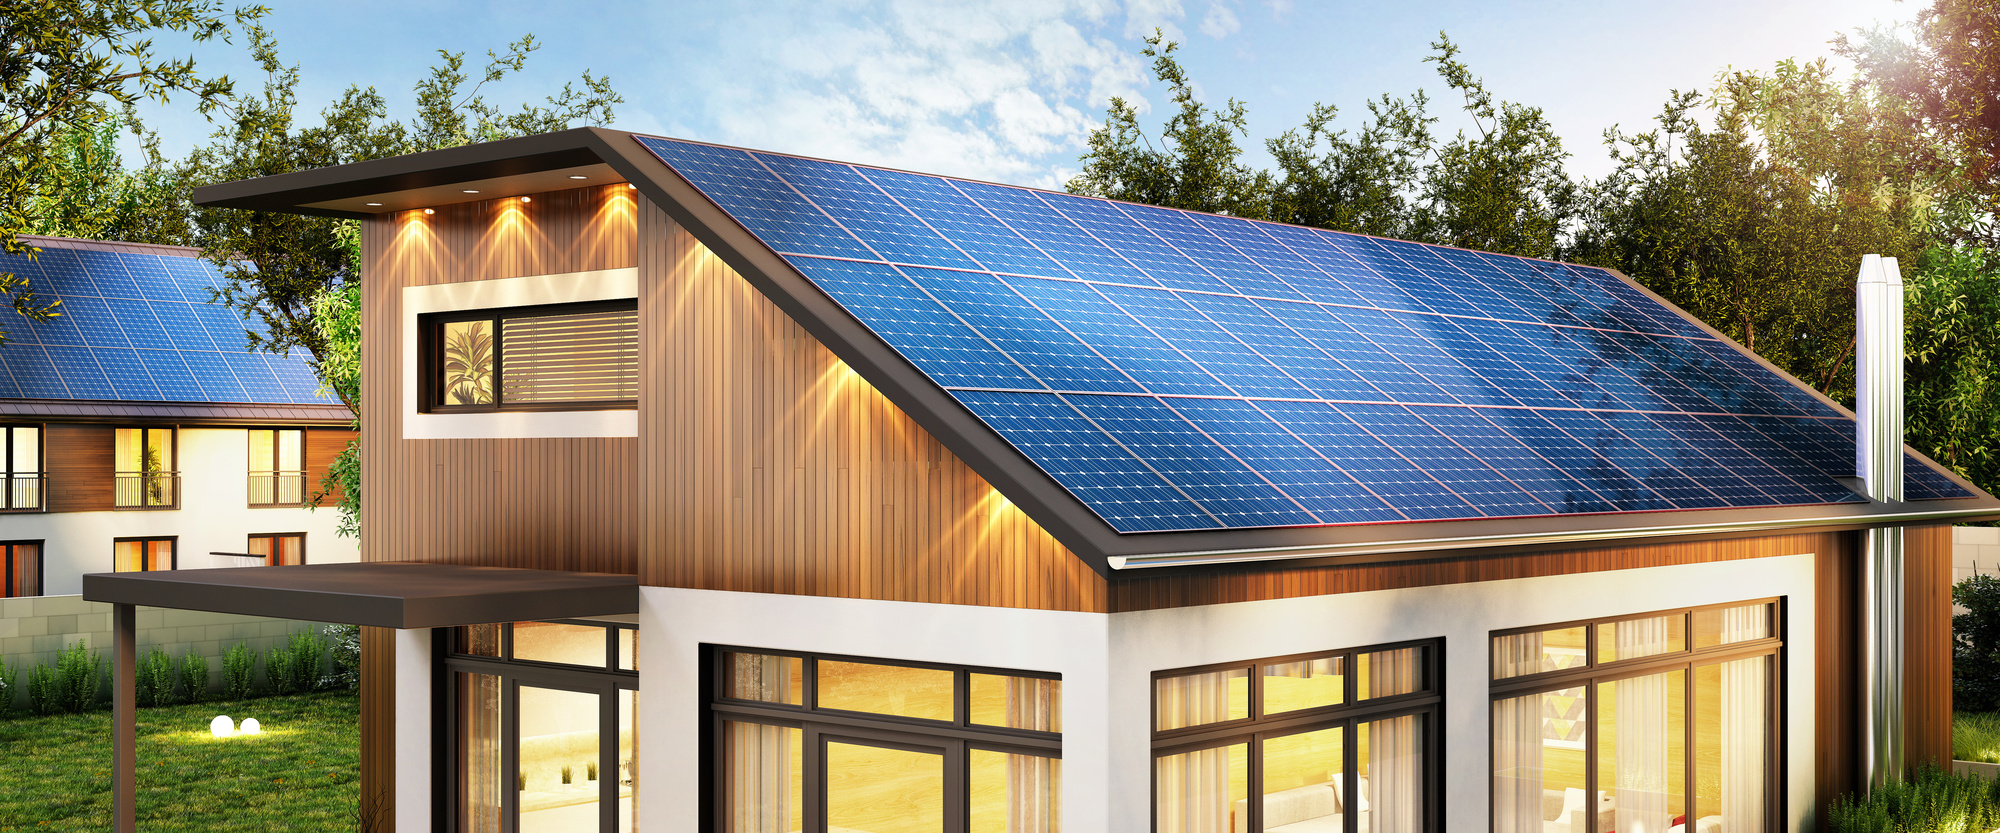 Here's How Solar Power Affects the Value of Your Home